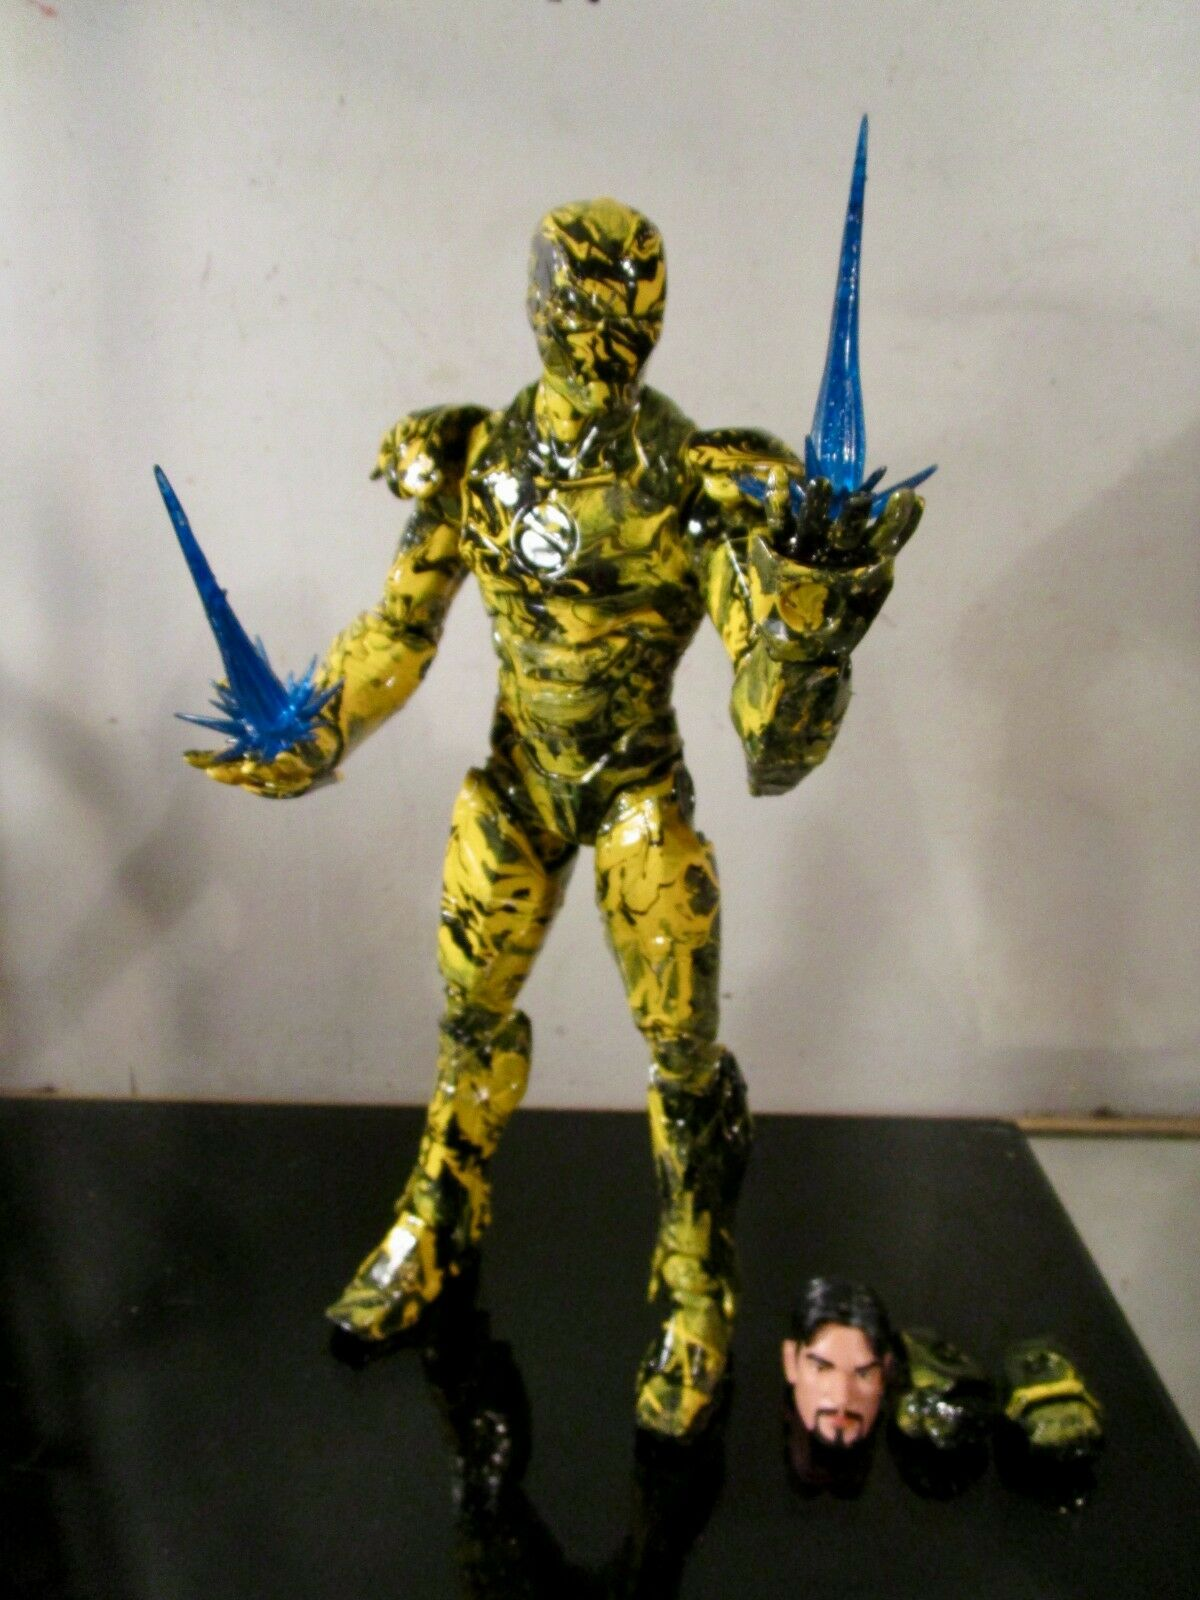 Marvel Legends IRON MAN 12  Figure HAND PAINTED COSTUM BY ARTIST MUSKYAI 1 OF A